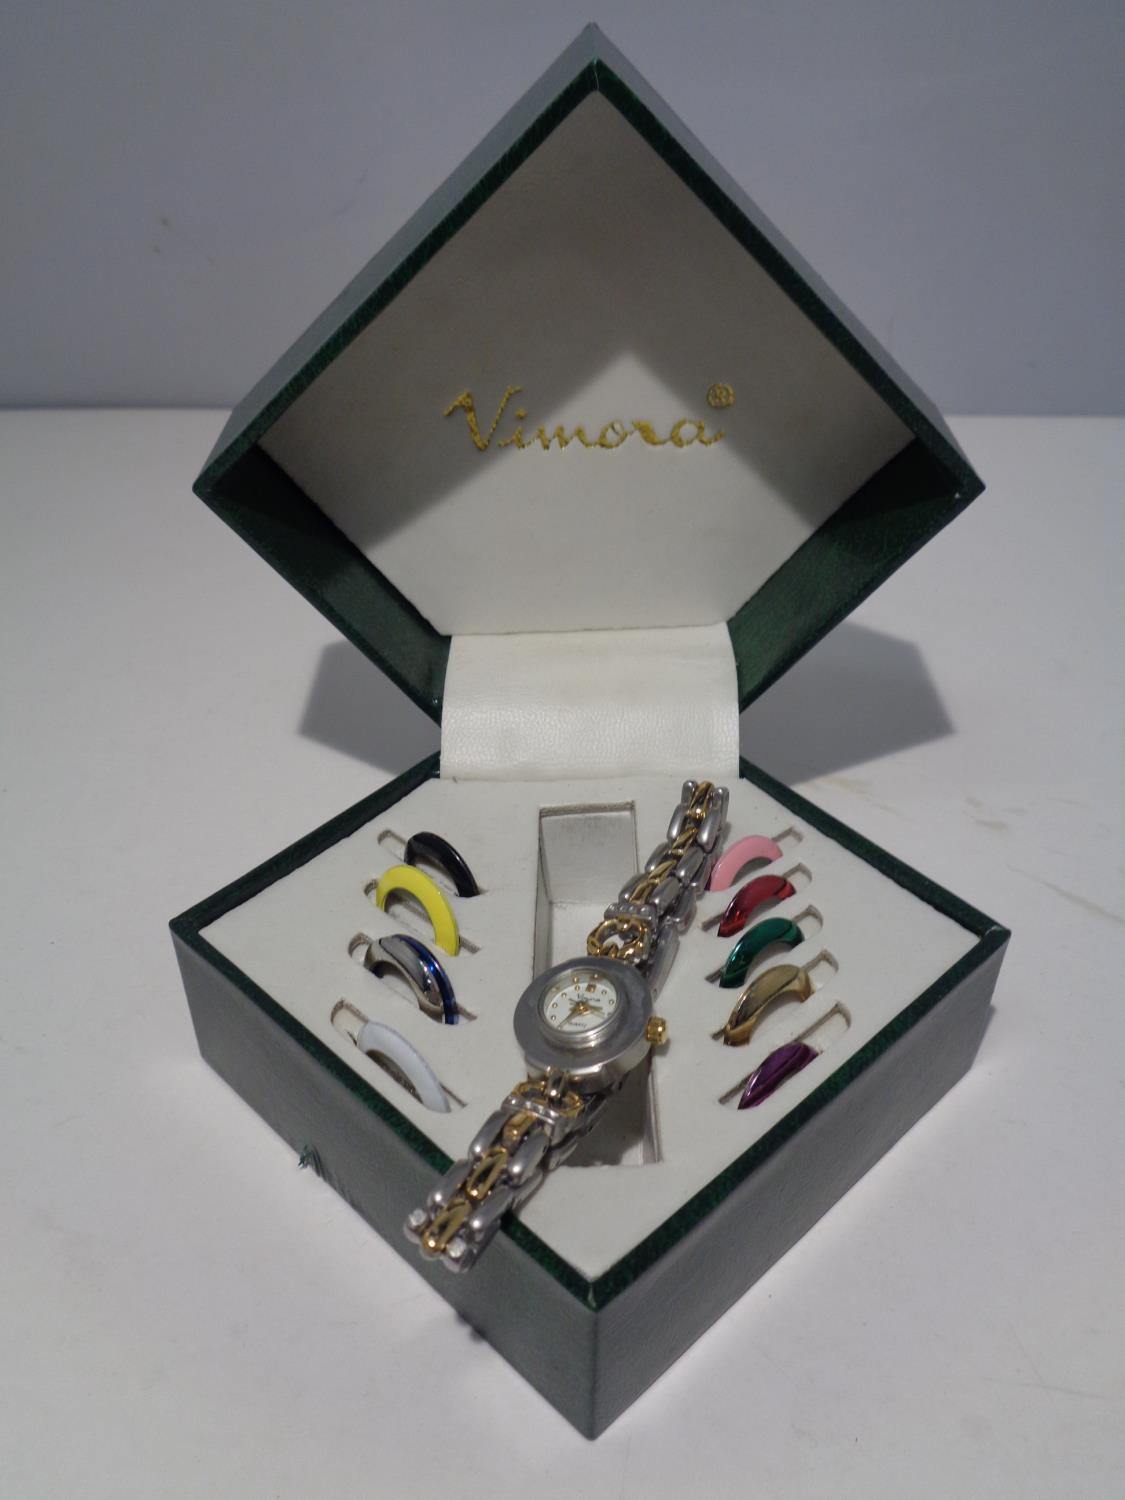 A VIMORA BOXED WATCH WITH COLOURED INTERCHANGEABLE WATCH FACE SURROUNDINGS